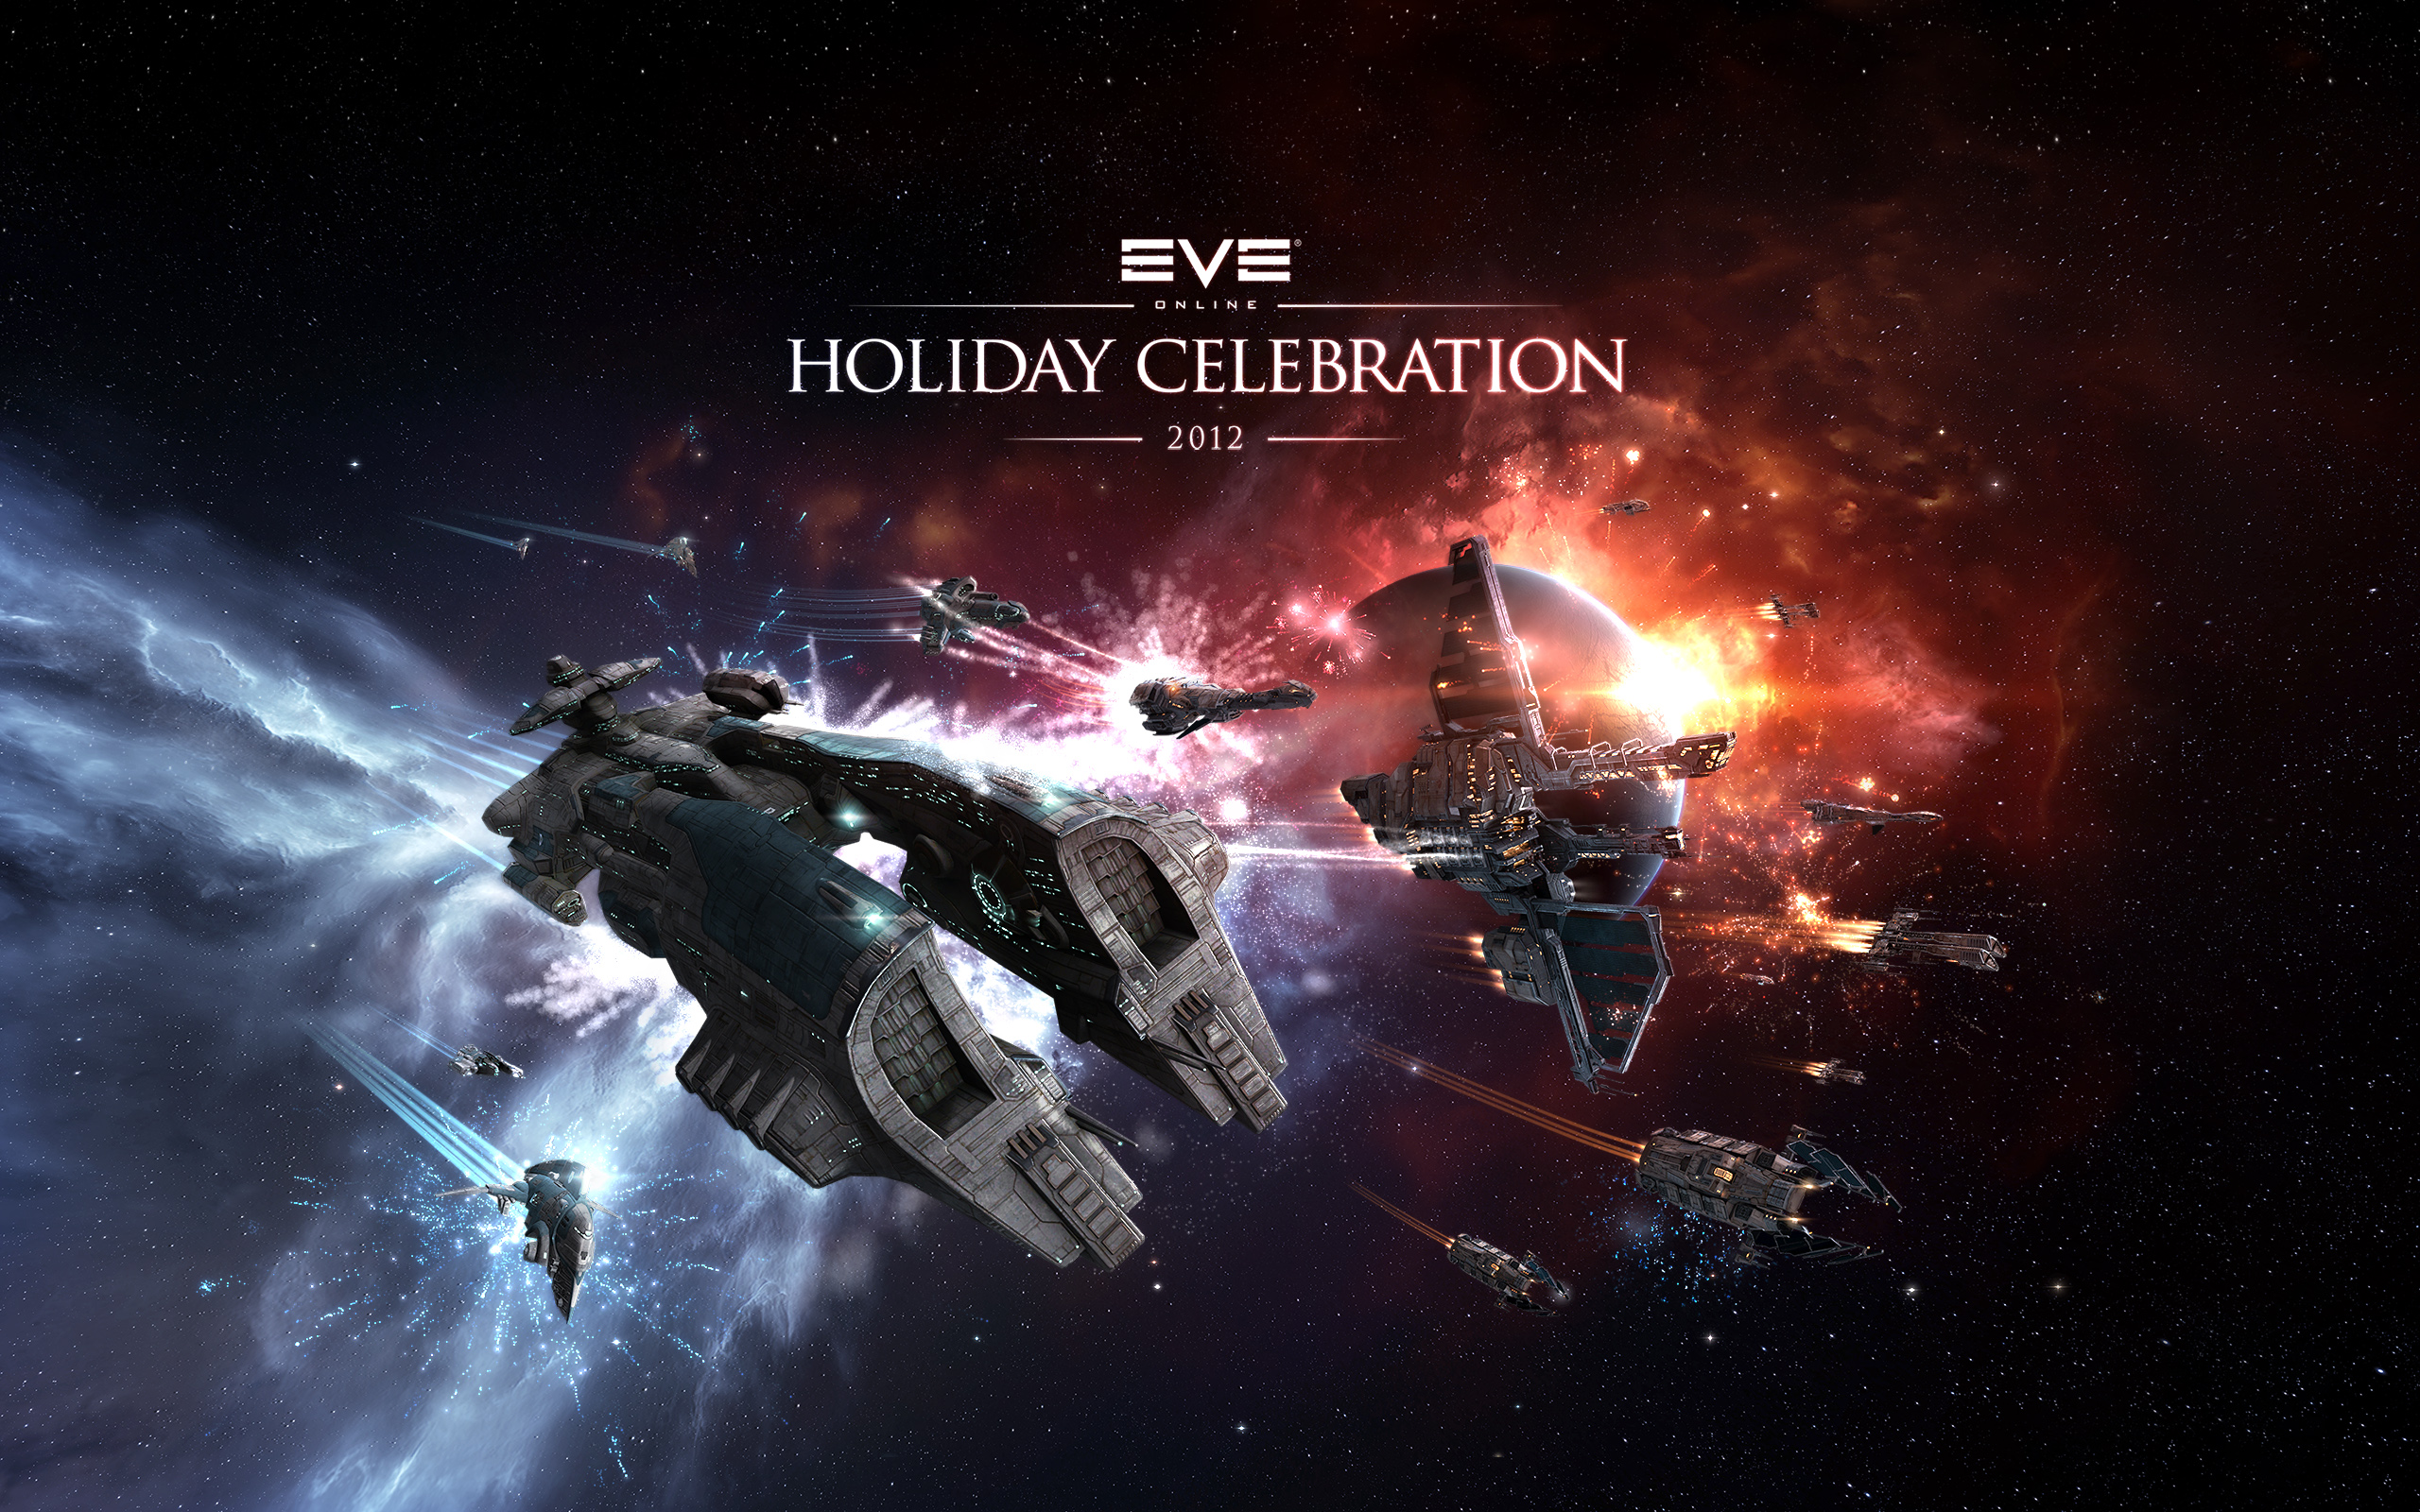 EVE Holiday Campaign 2012